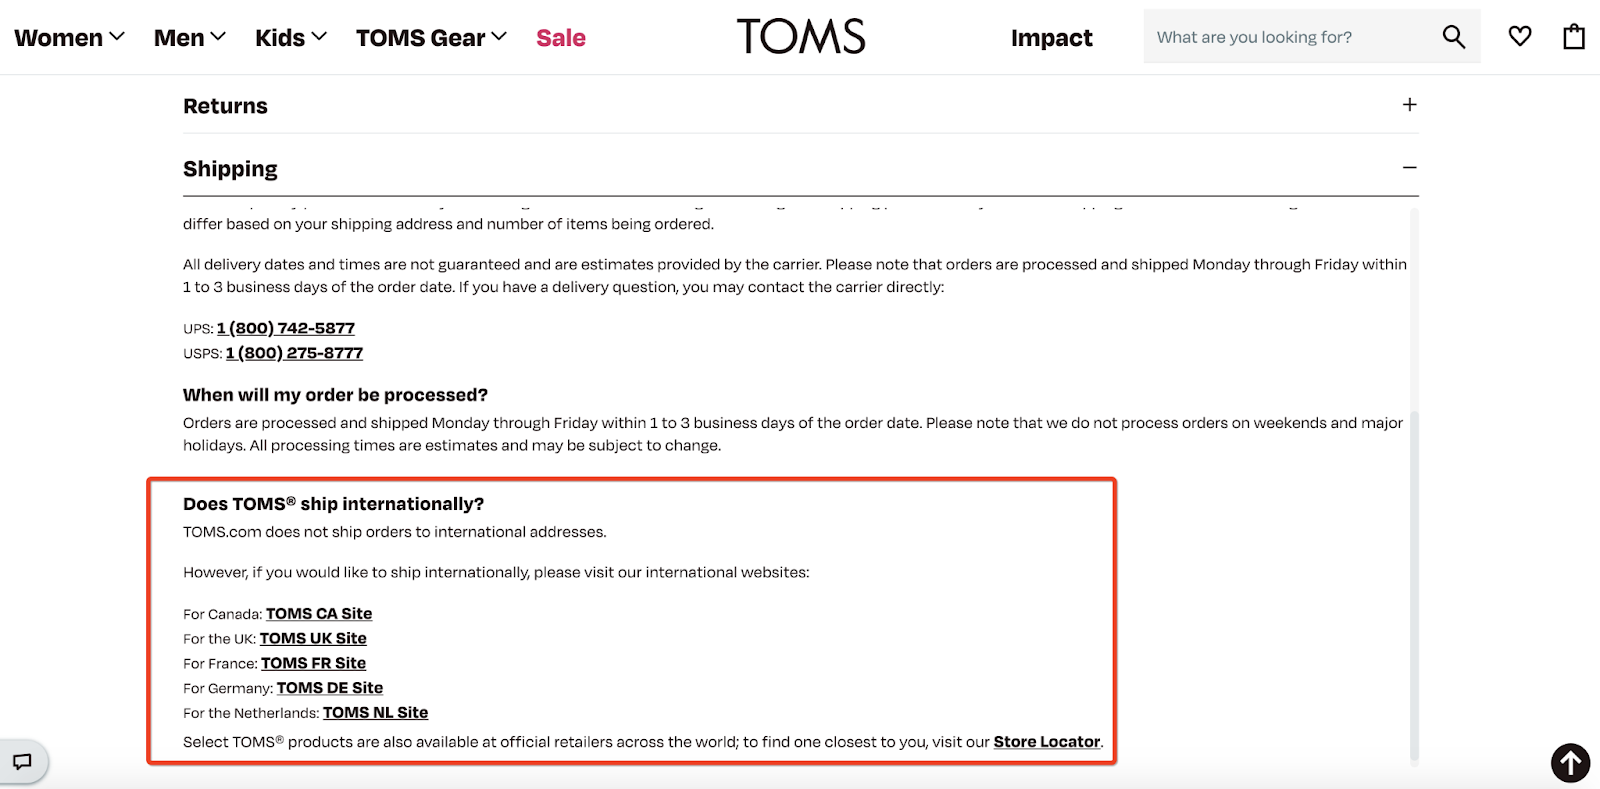 TOMS store policy example: international shipping policy